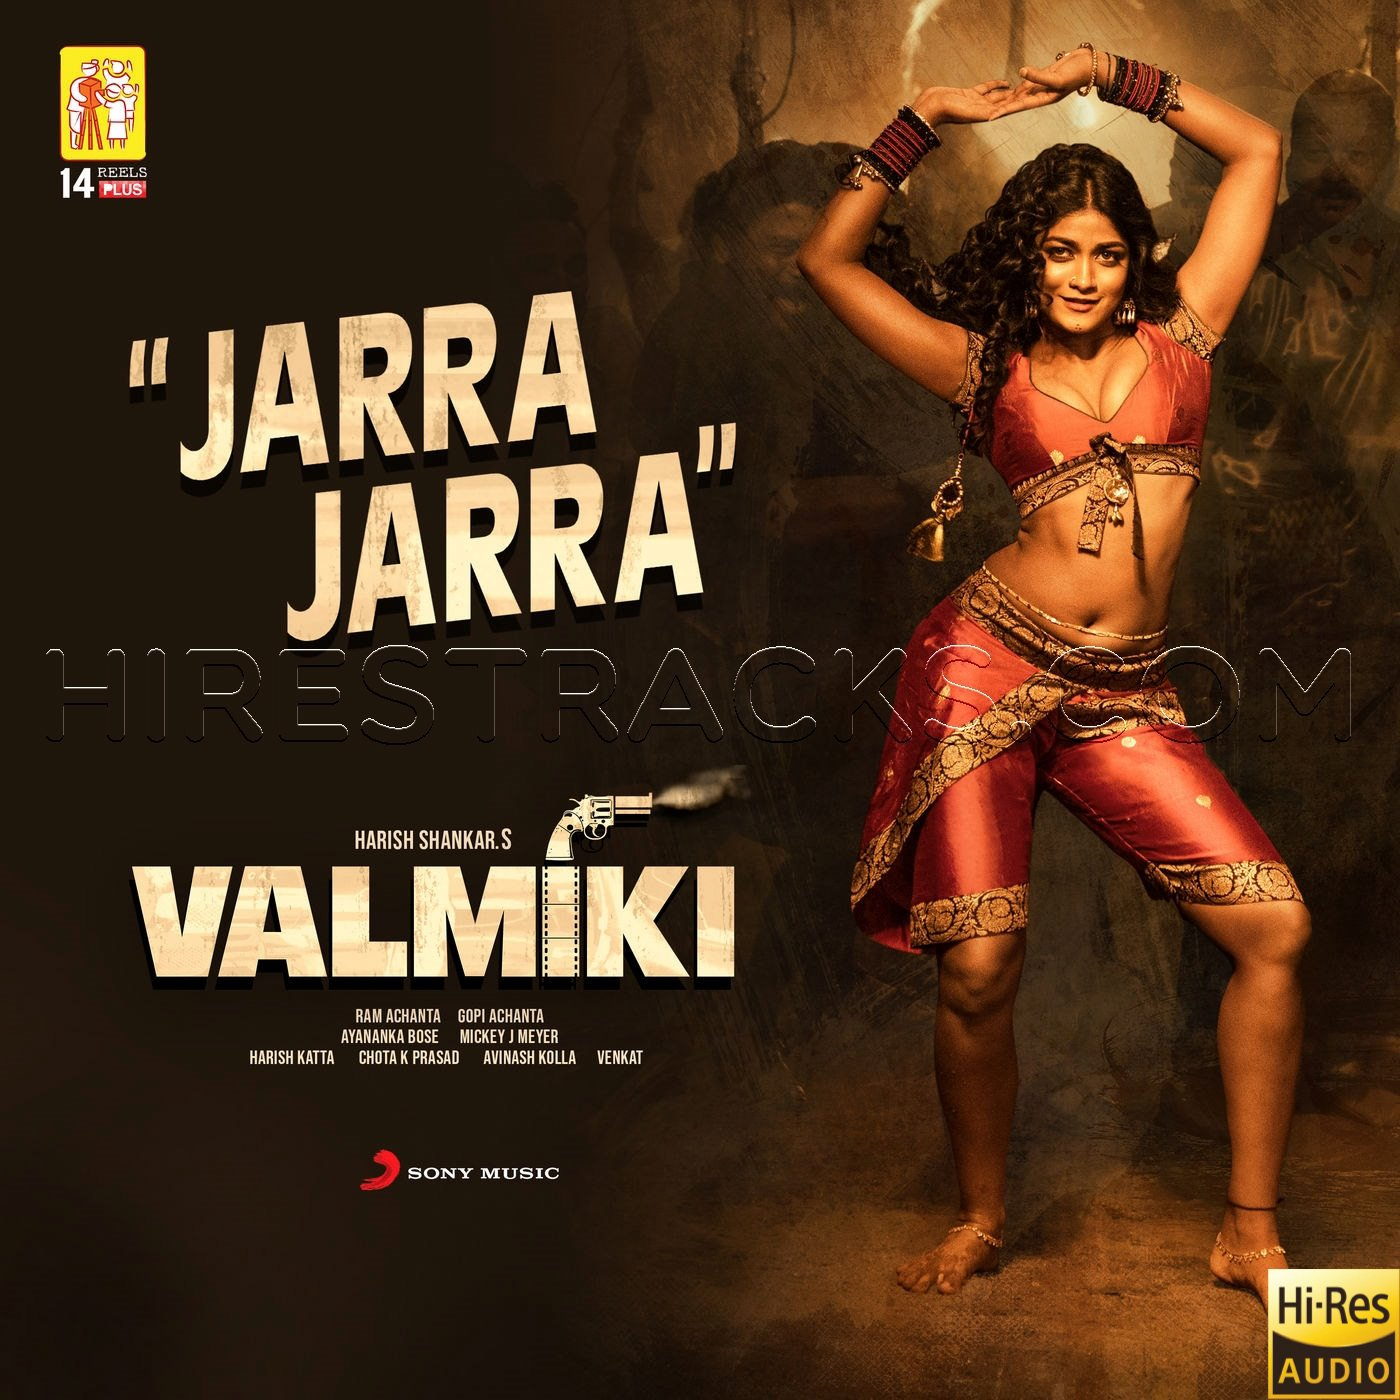 Jarra Jarra (From Valmiki) (2019) (Mickey J Meyer) (Sony Music) [24 BIT – 48 KHZ] [Digital-DL-FLAC]